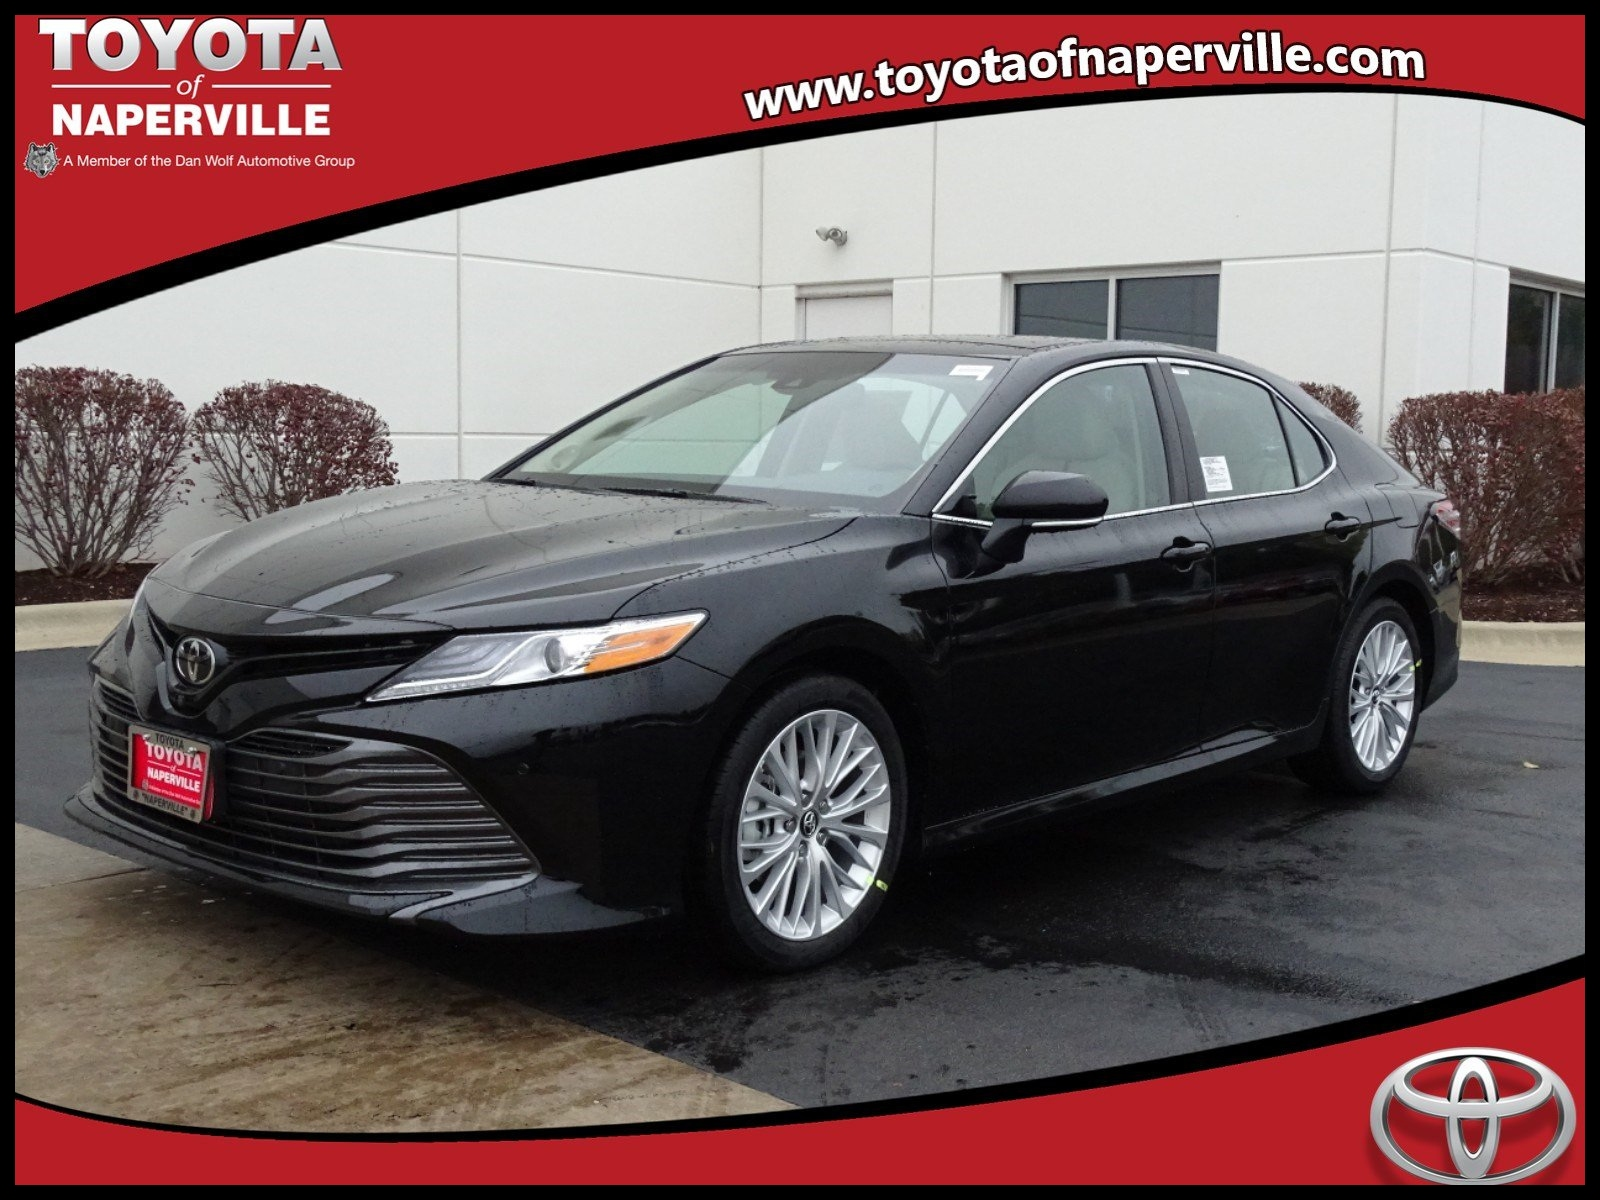 Top New 2018 toyota Camry Xle 4d Sedan In Naperville C Reviews